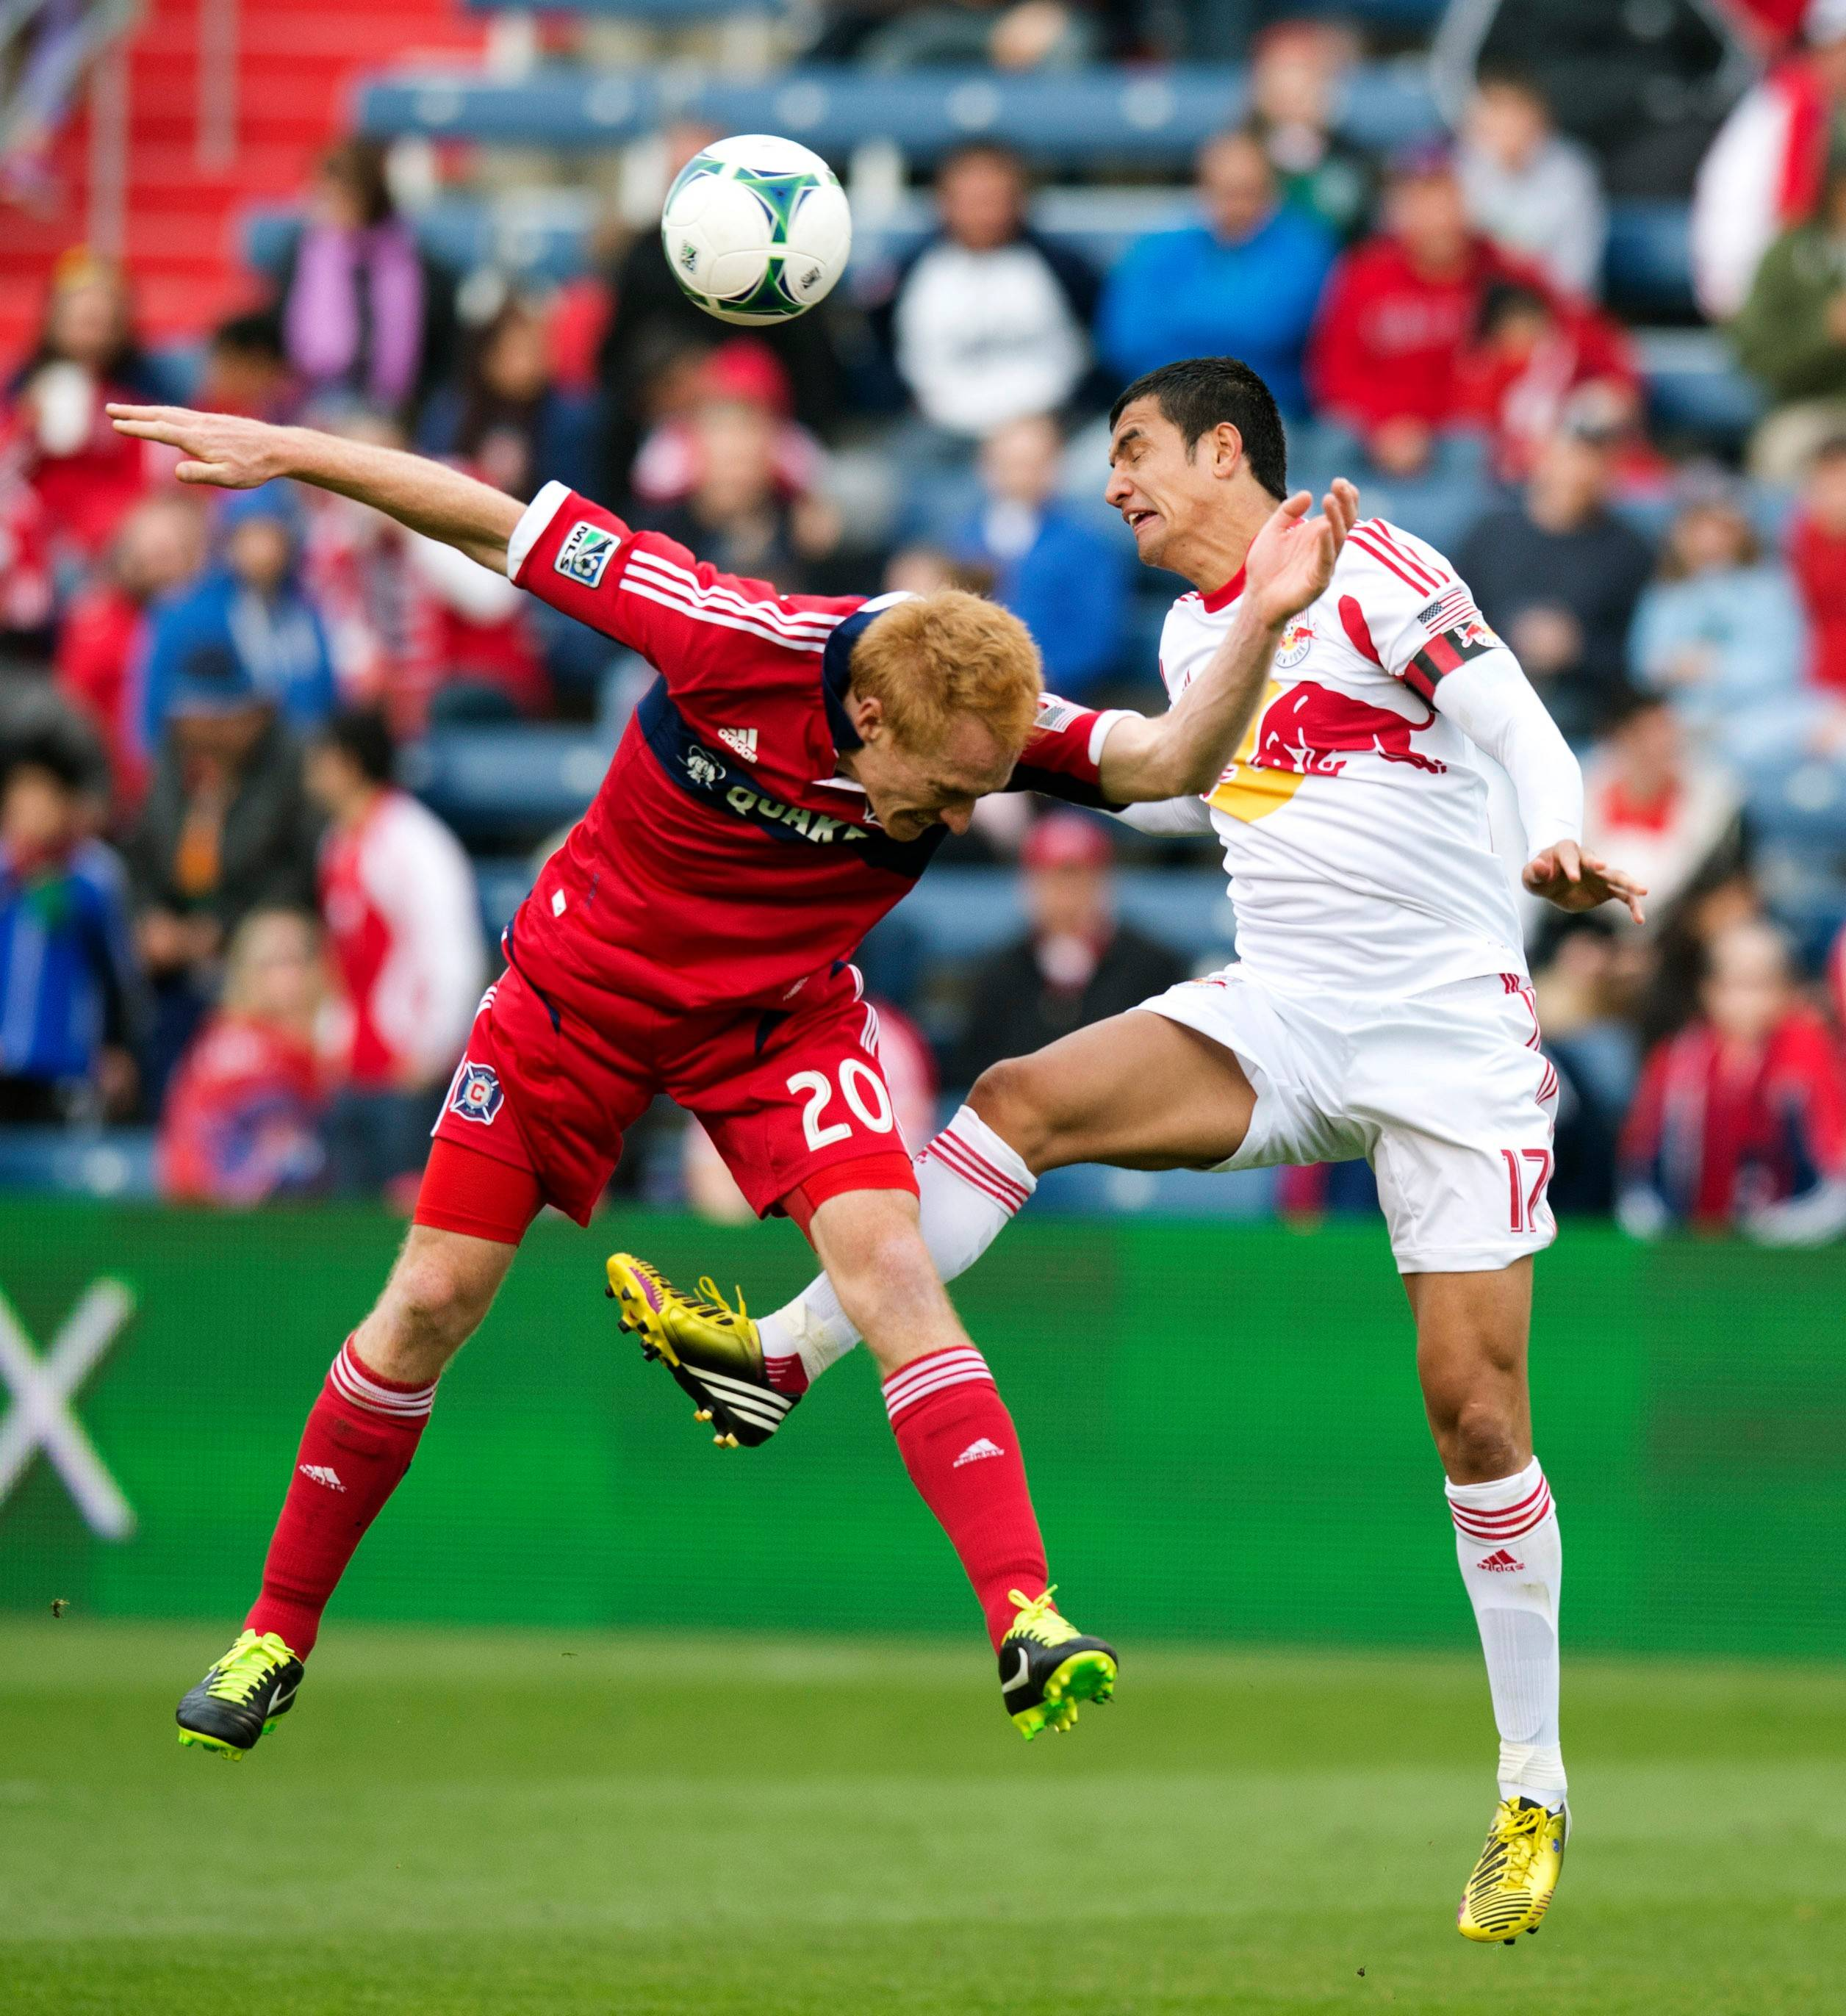 Chicago Fire midfielder and team captain Jeff Larentowicz, left, says the Fire has to work more as a team and defend as a team.